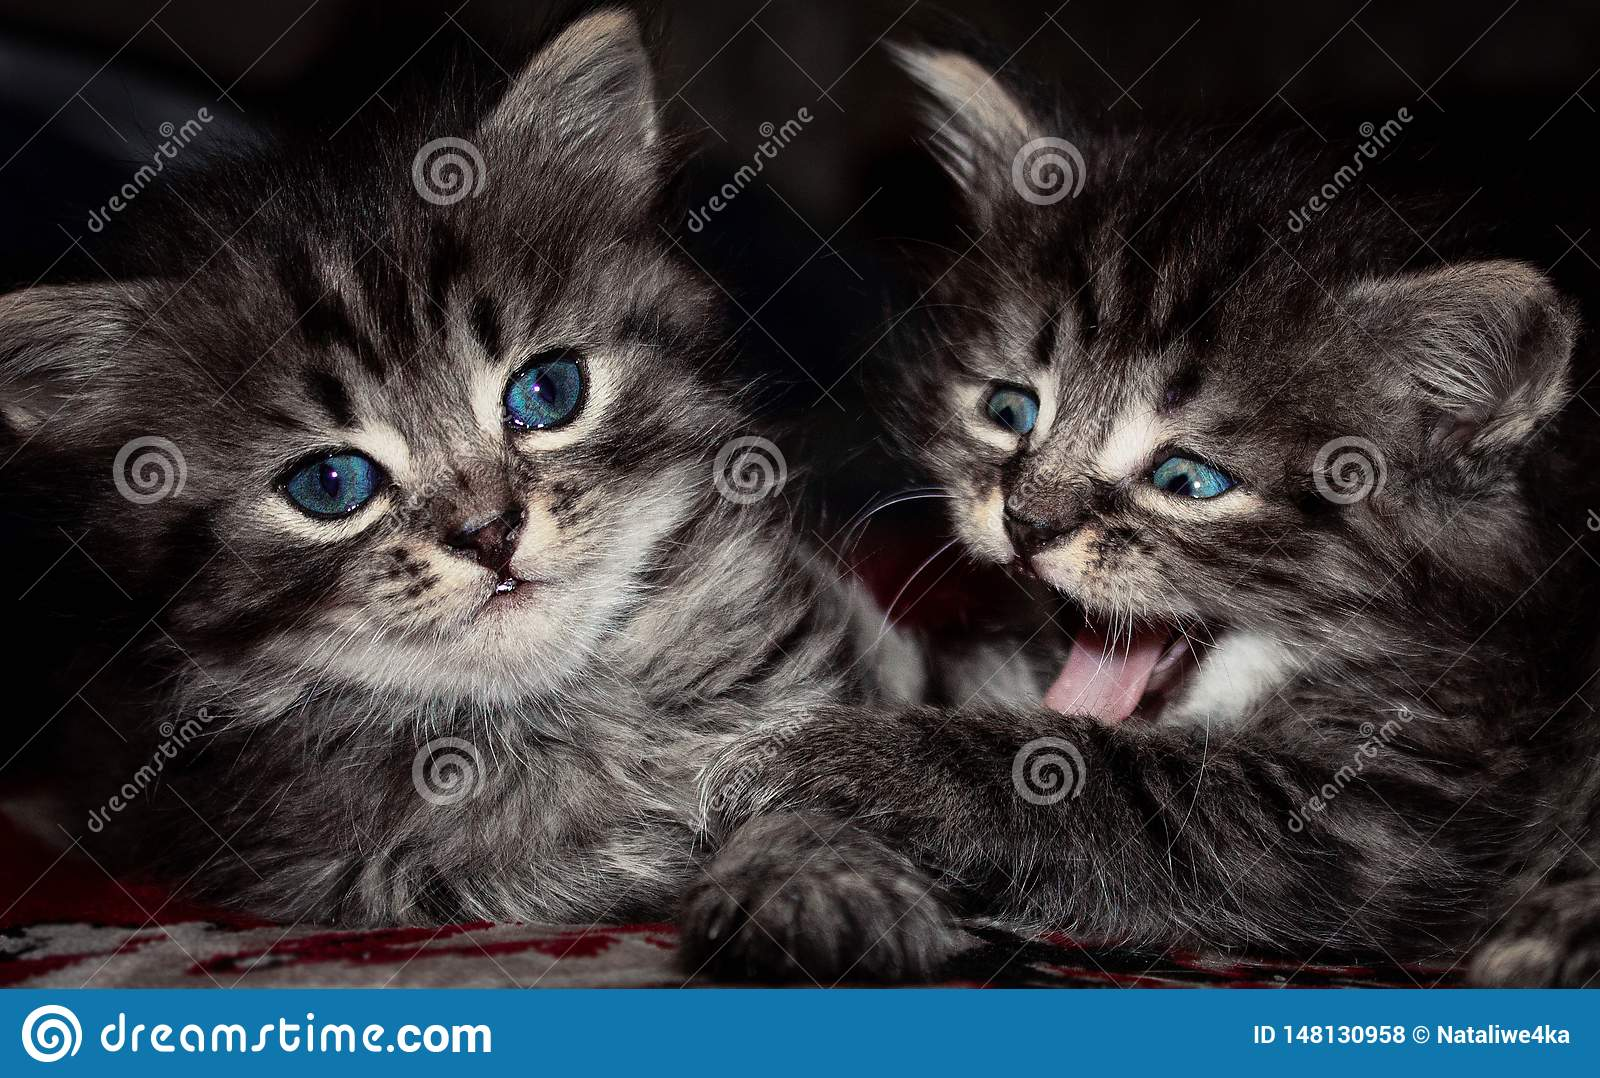 Grey cats with blue eyes stock photo. Image of house , 148130958